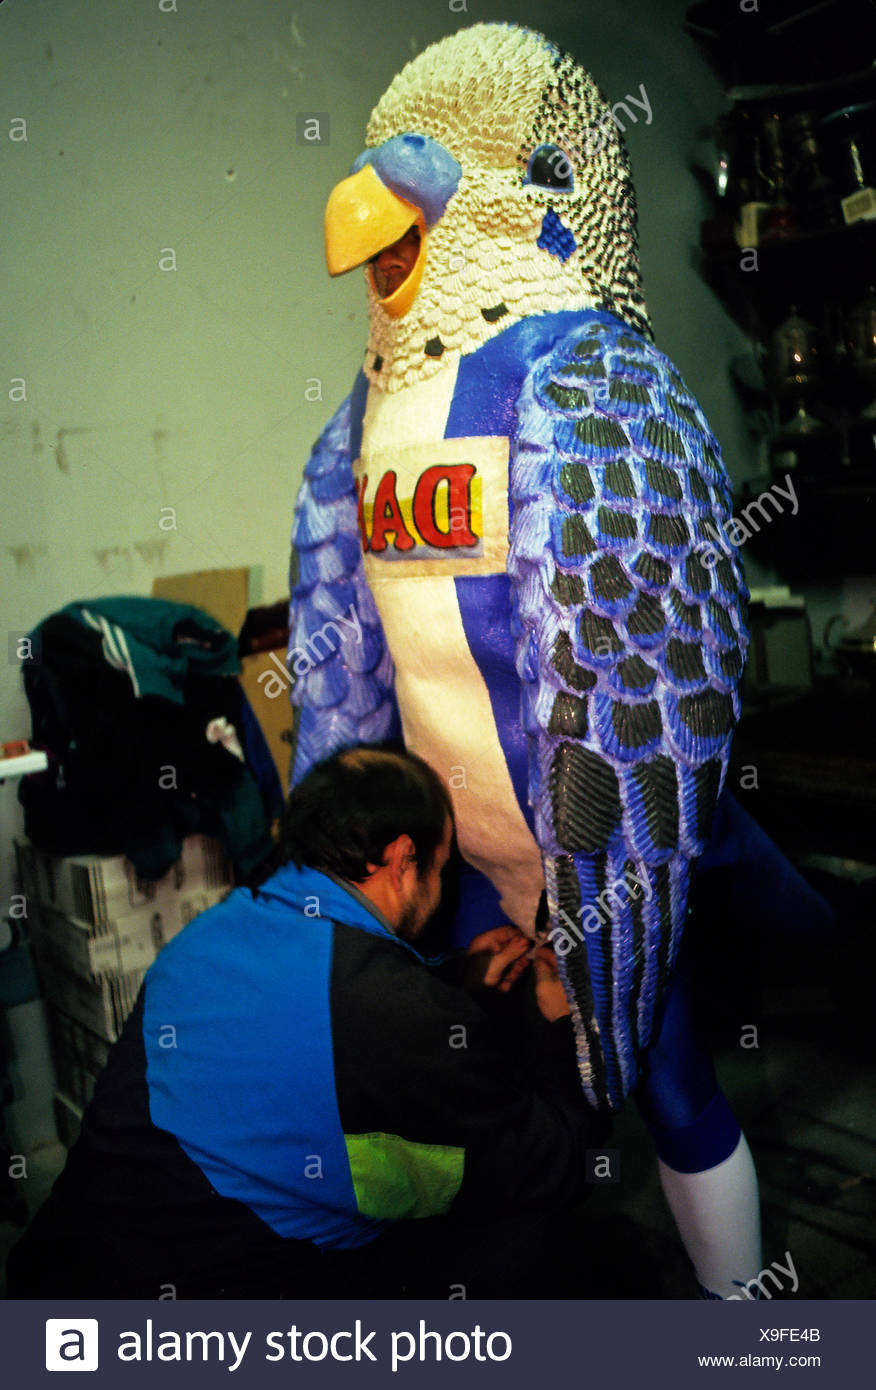 A man buttons up the RDC Espanol Football Club mascot costume on a man. - Stock Image